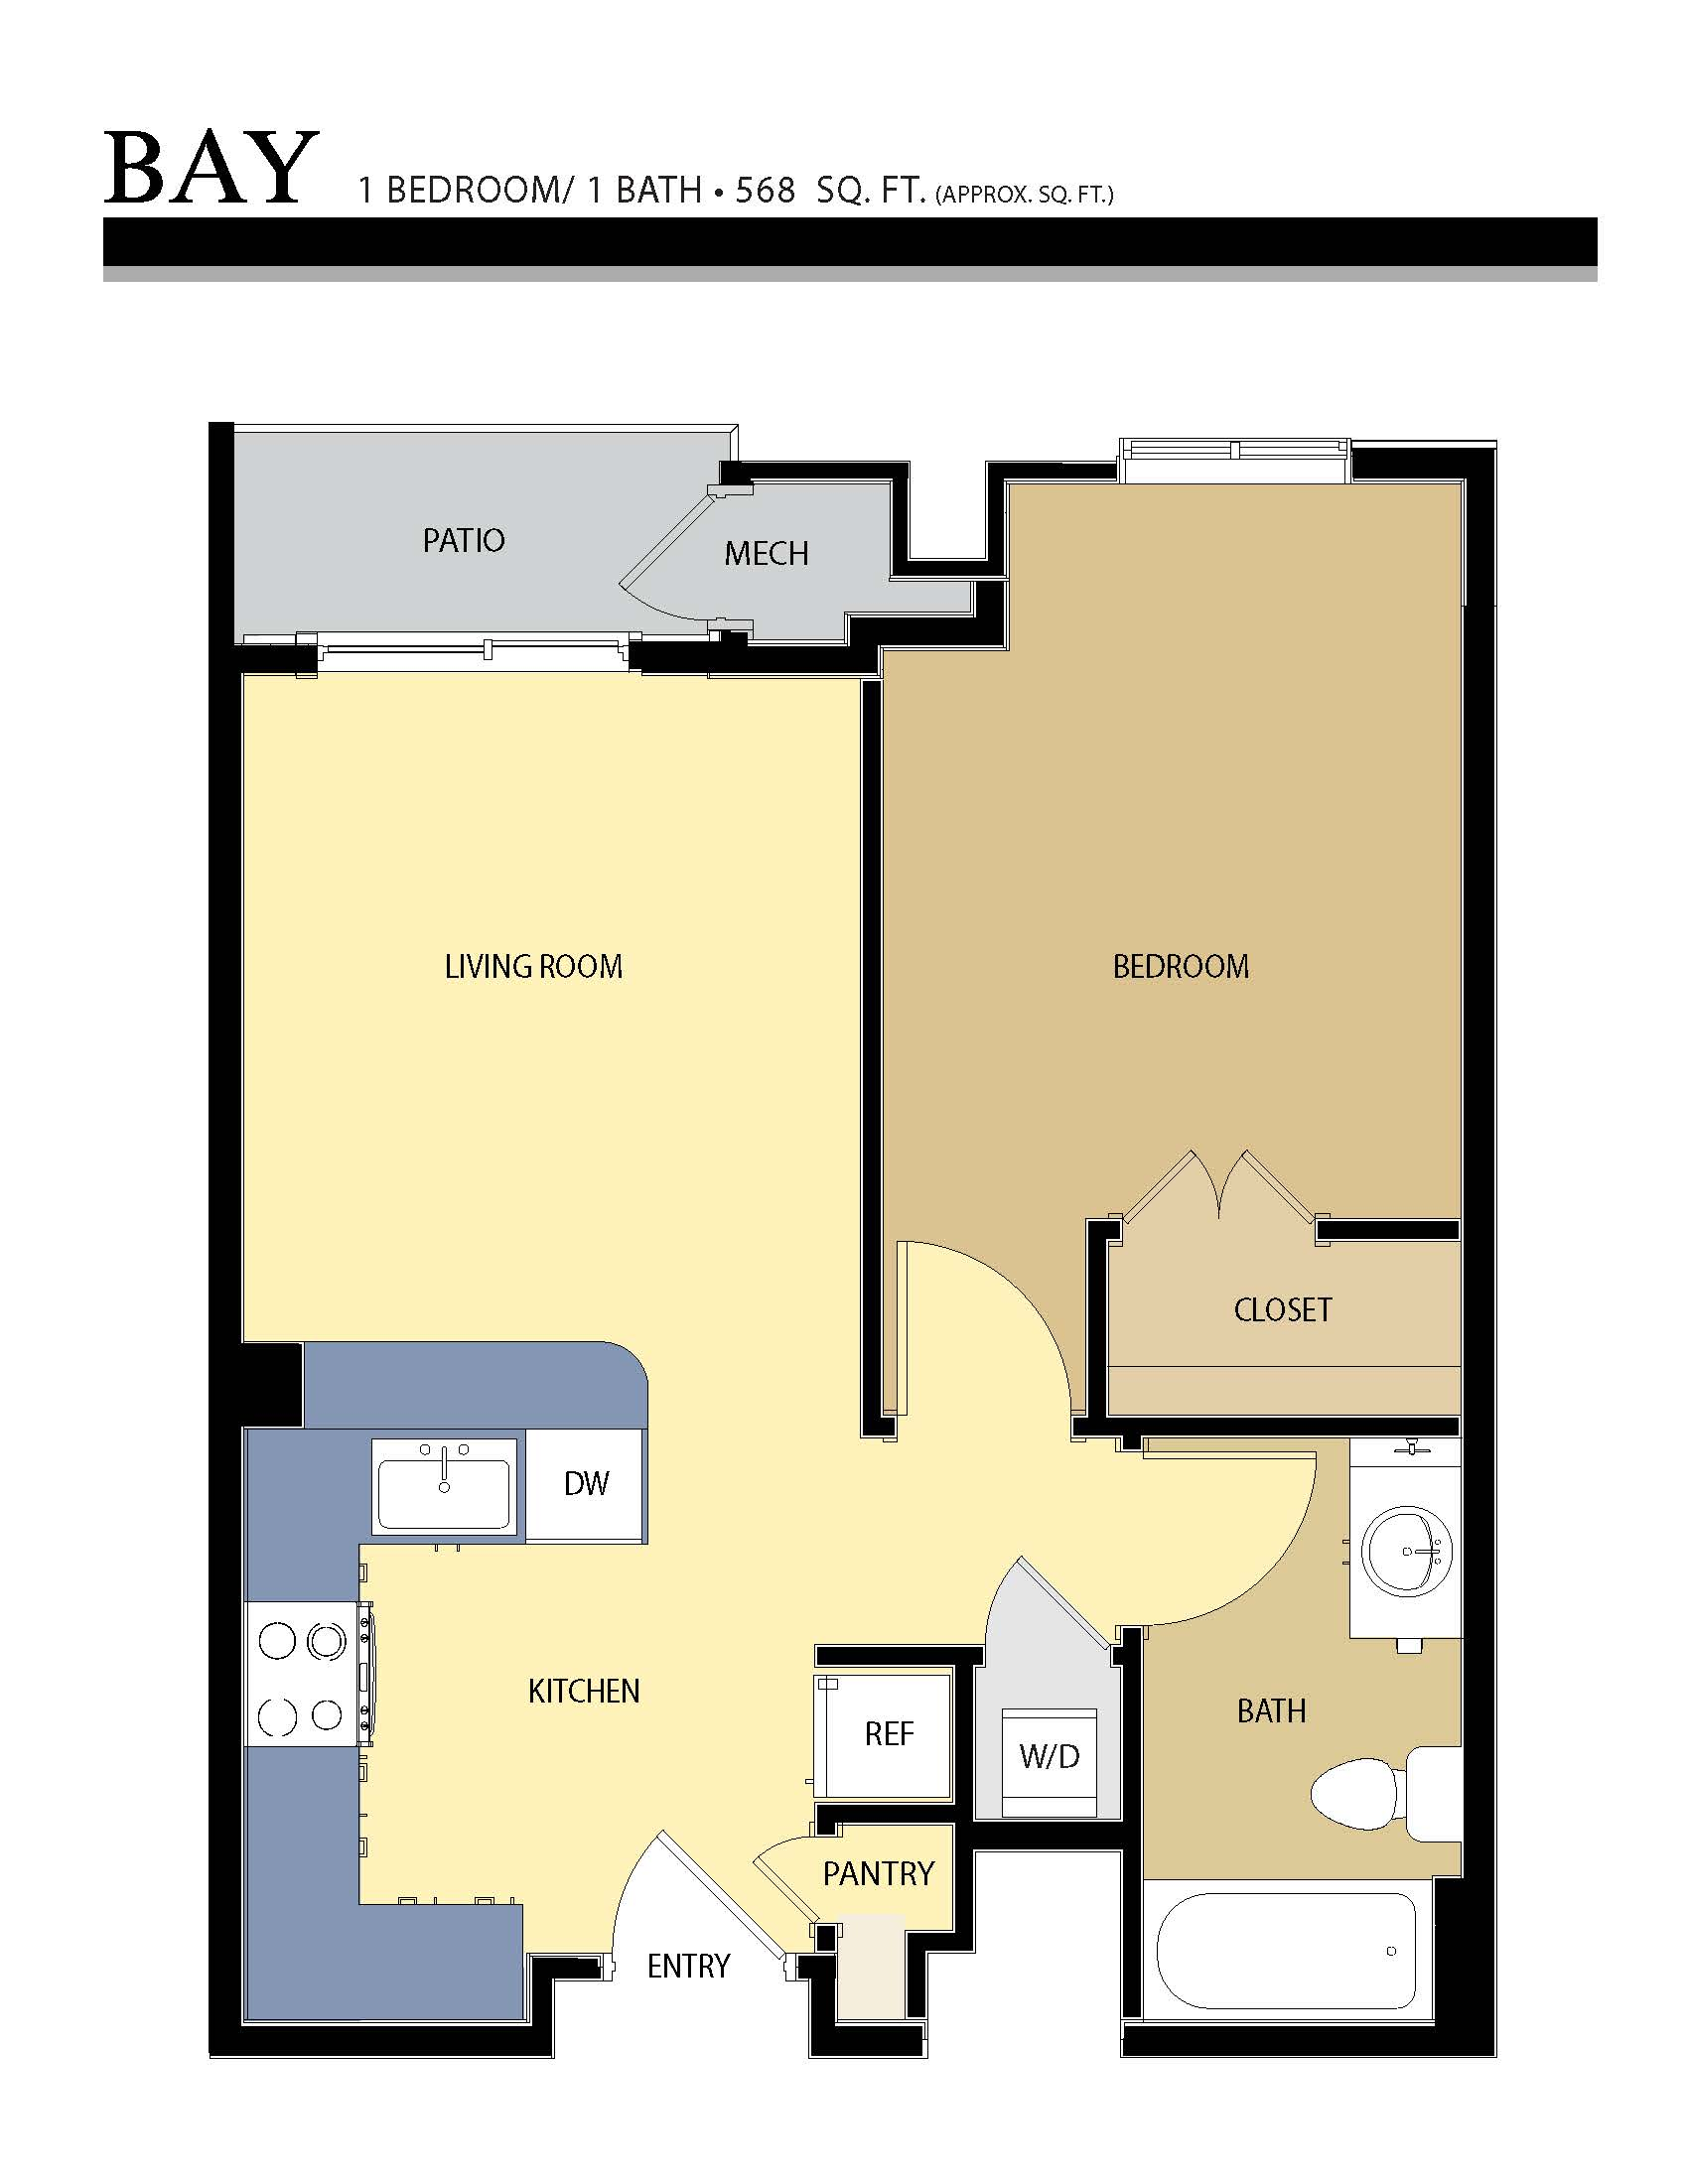 Bay floor plan - 1 Bed / 1 Bath (568 Sq Ft)